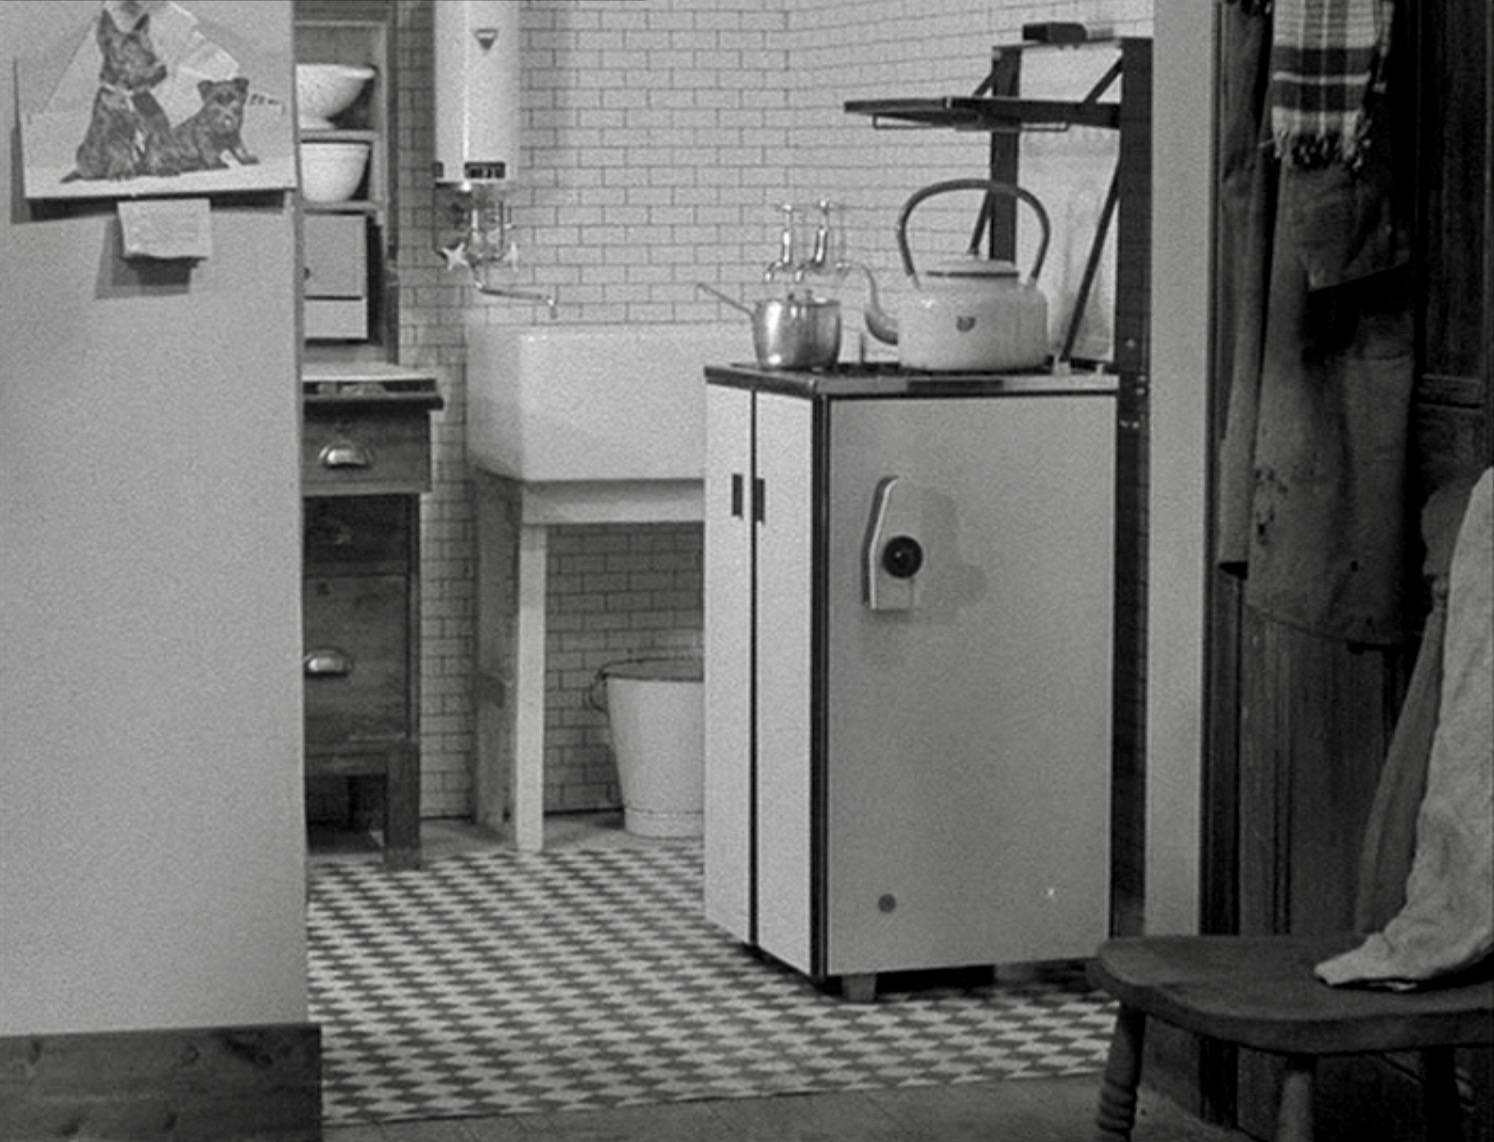 The new, modern kitchenette in Mony a Pickle (1938).